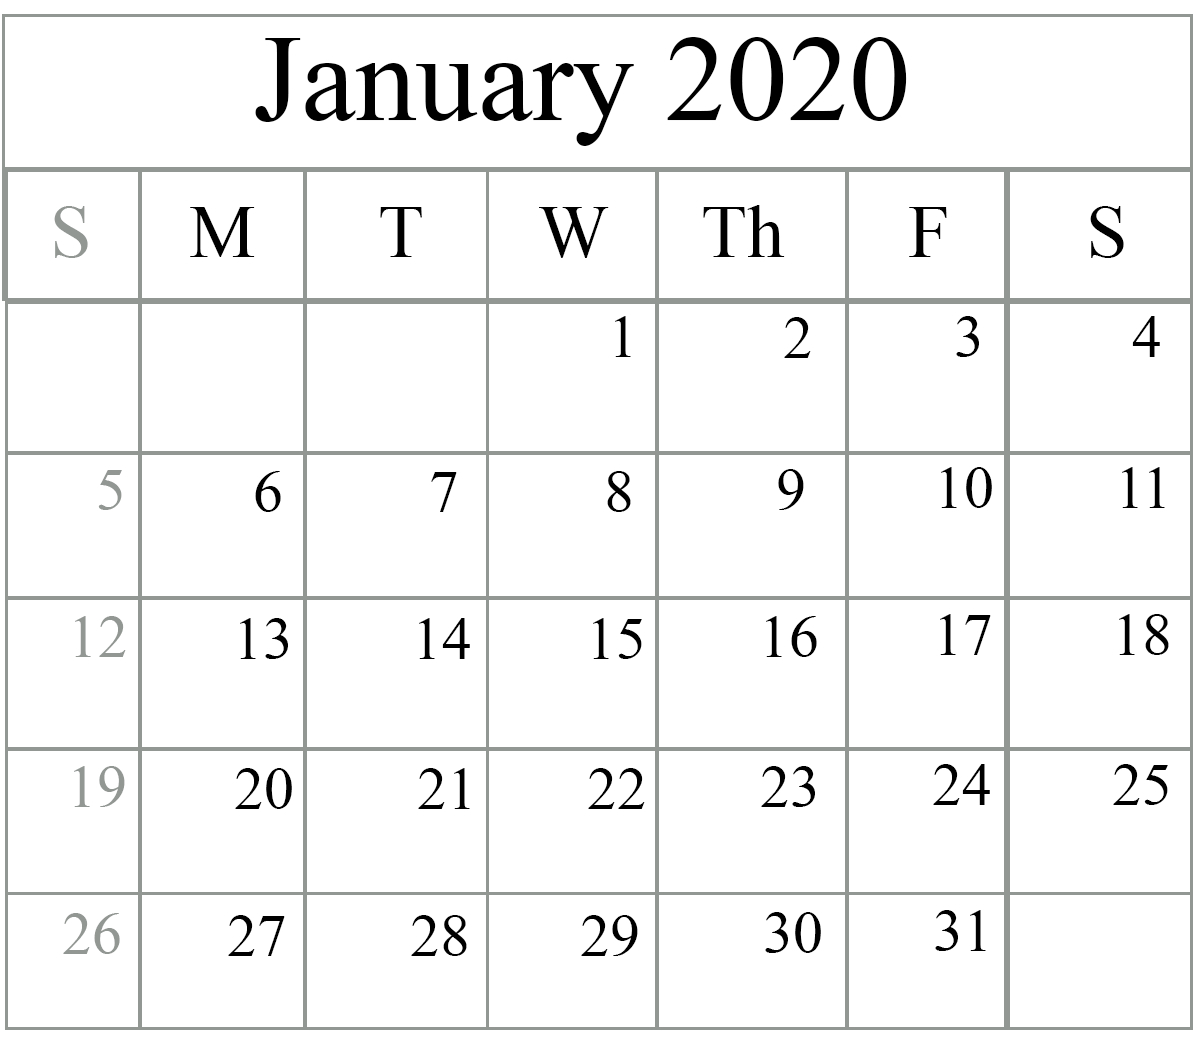 January 2020 Calendar Excel – Free Monthly Calendar regarding January 2020 Waterproof Calendar